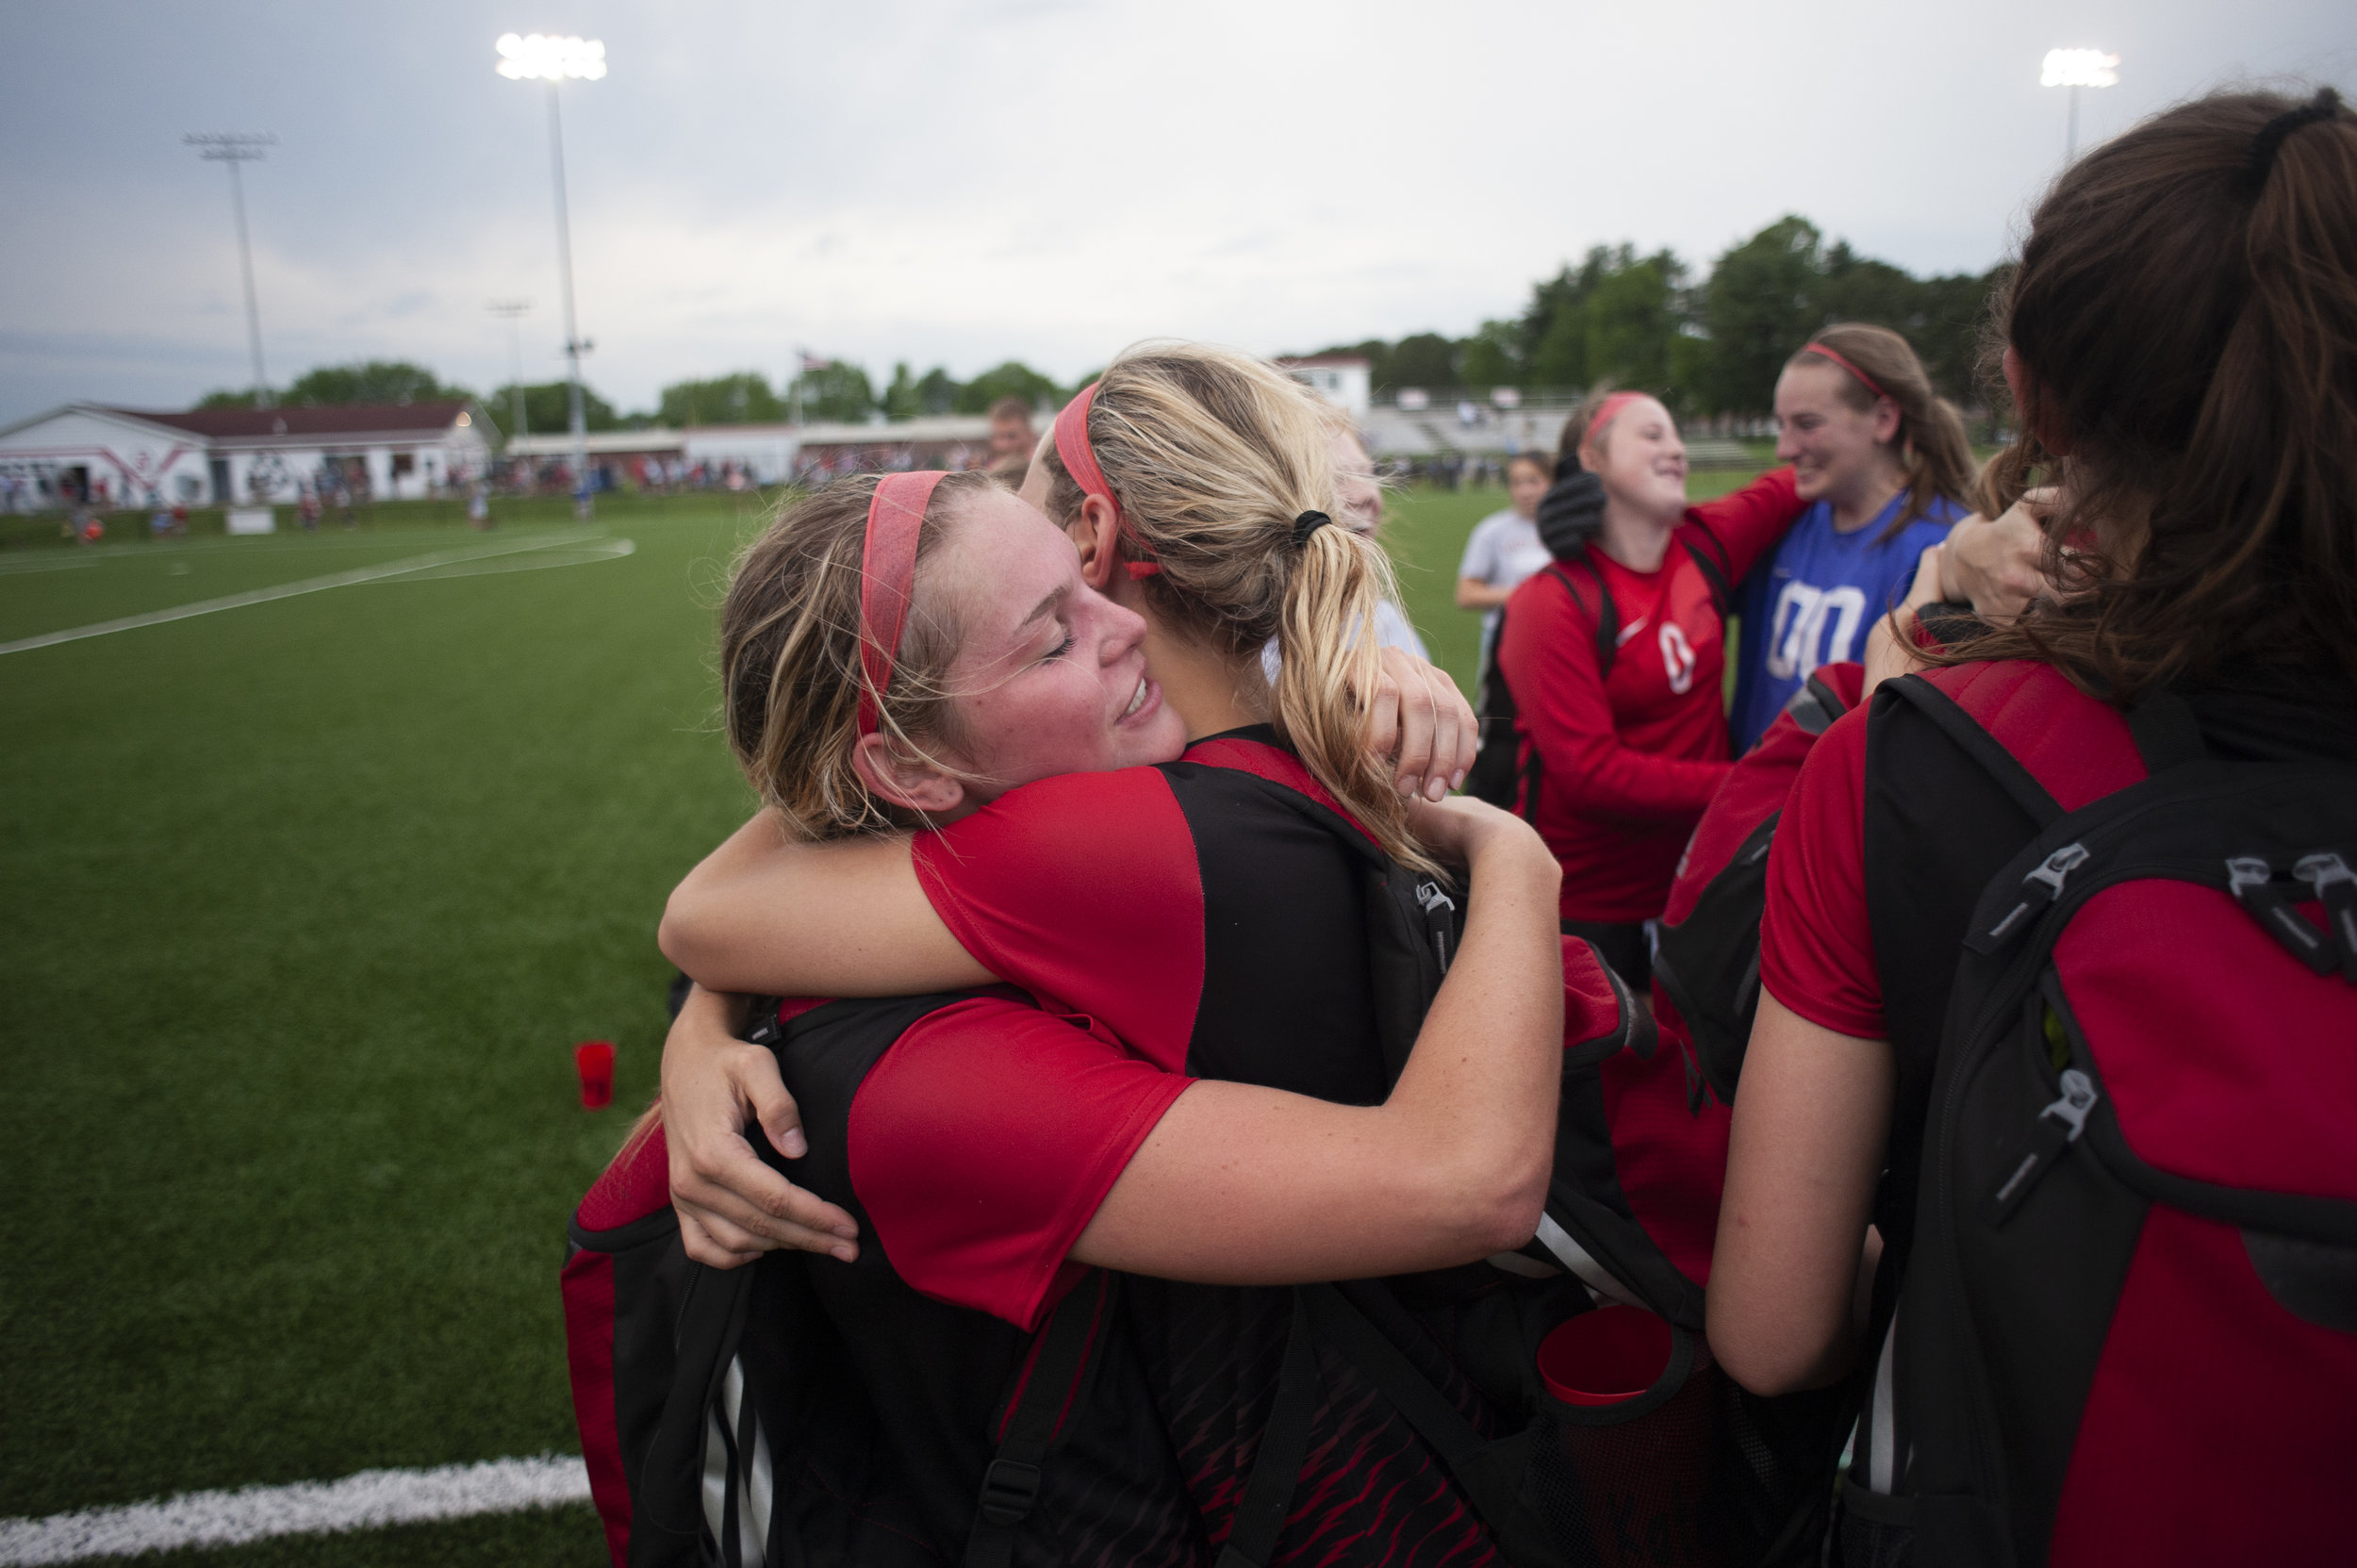 Jackson's Katelyn Miller (4), right, hugs her sister and teammate Natalie Miller (14) following the Jackson Indians' 2-1 overtime loss to Lindbergh High School in the Class 4 sectionals Tuesday, May 21, 2019, in Jackson. Jacob Wiegand | Southeast Missourian